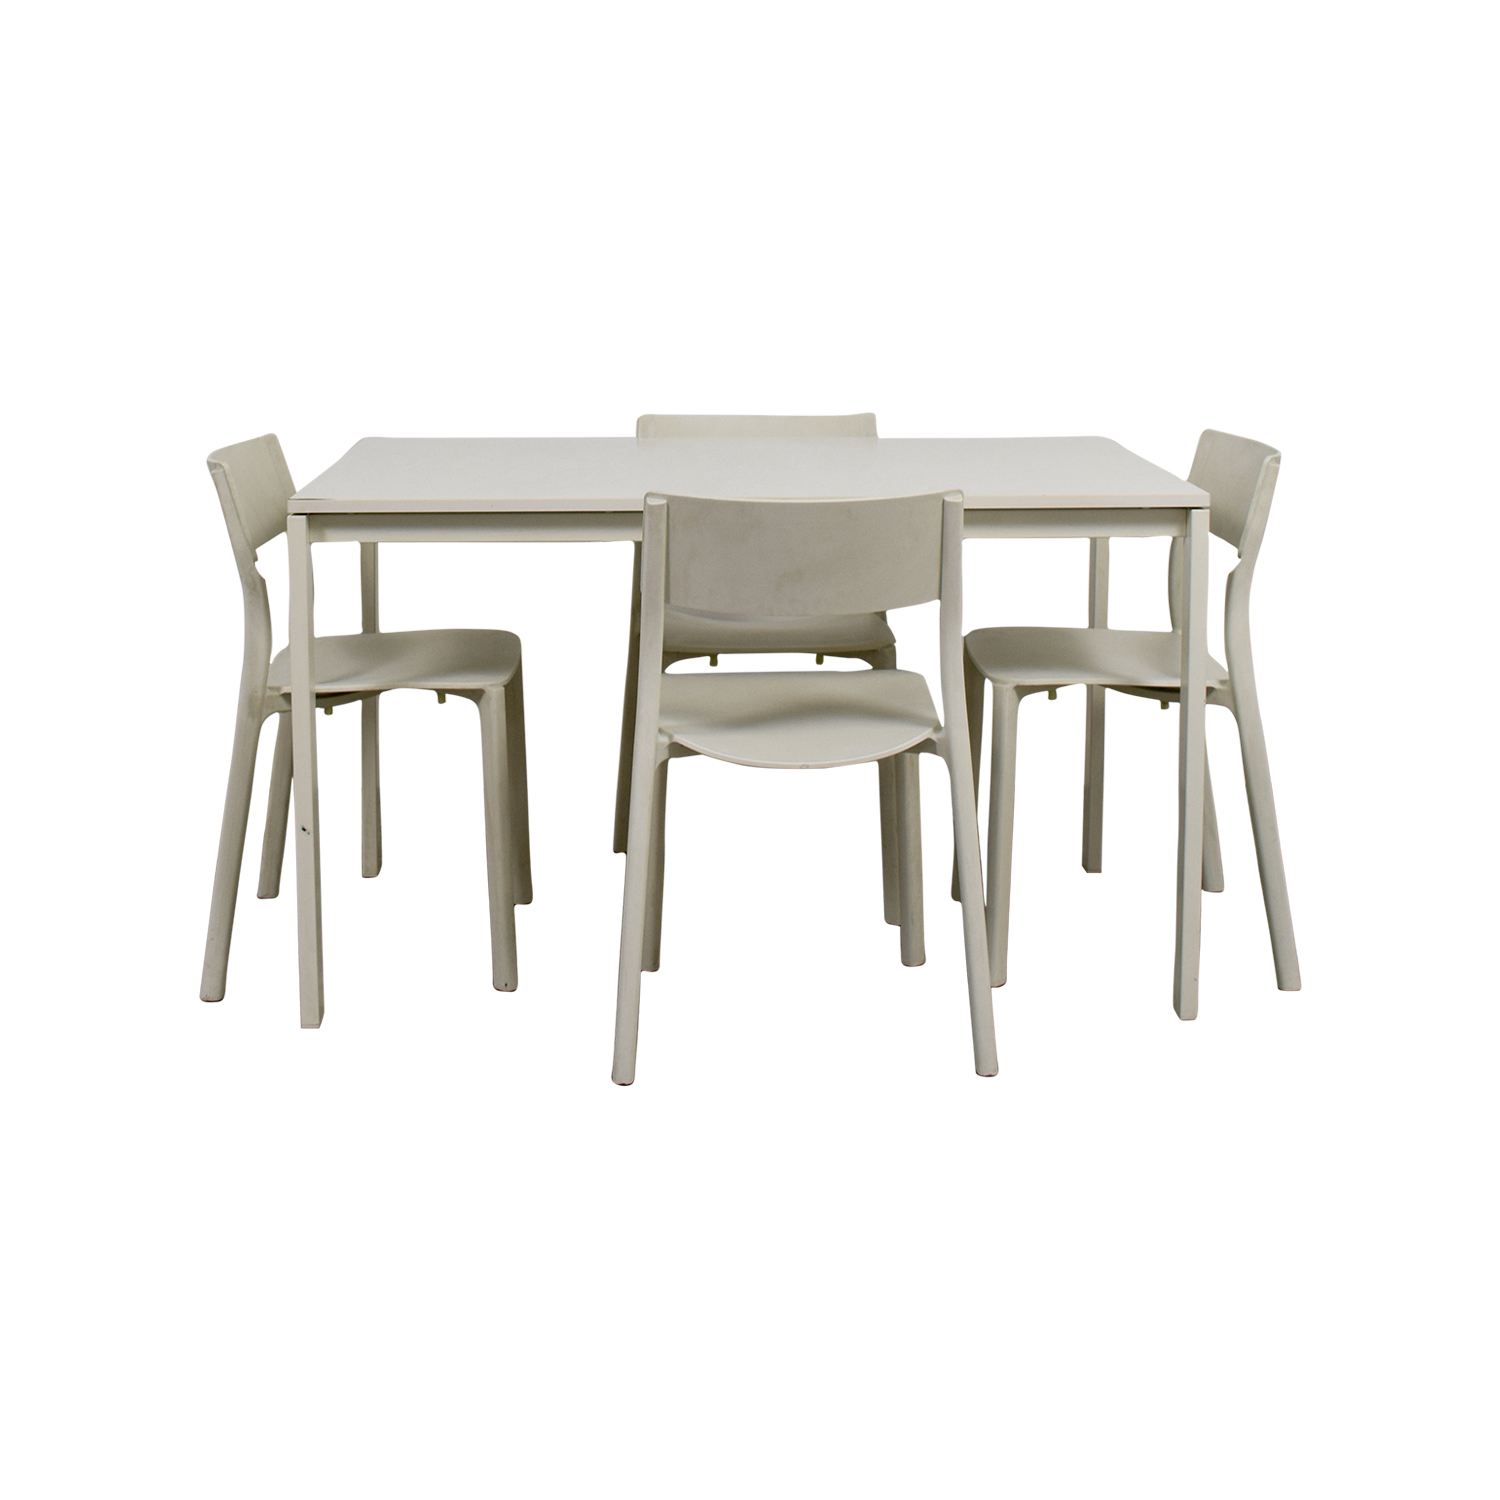 IKEA IKEA White Kitchen Table and Chairs on sale